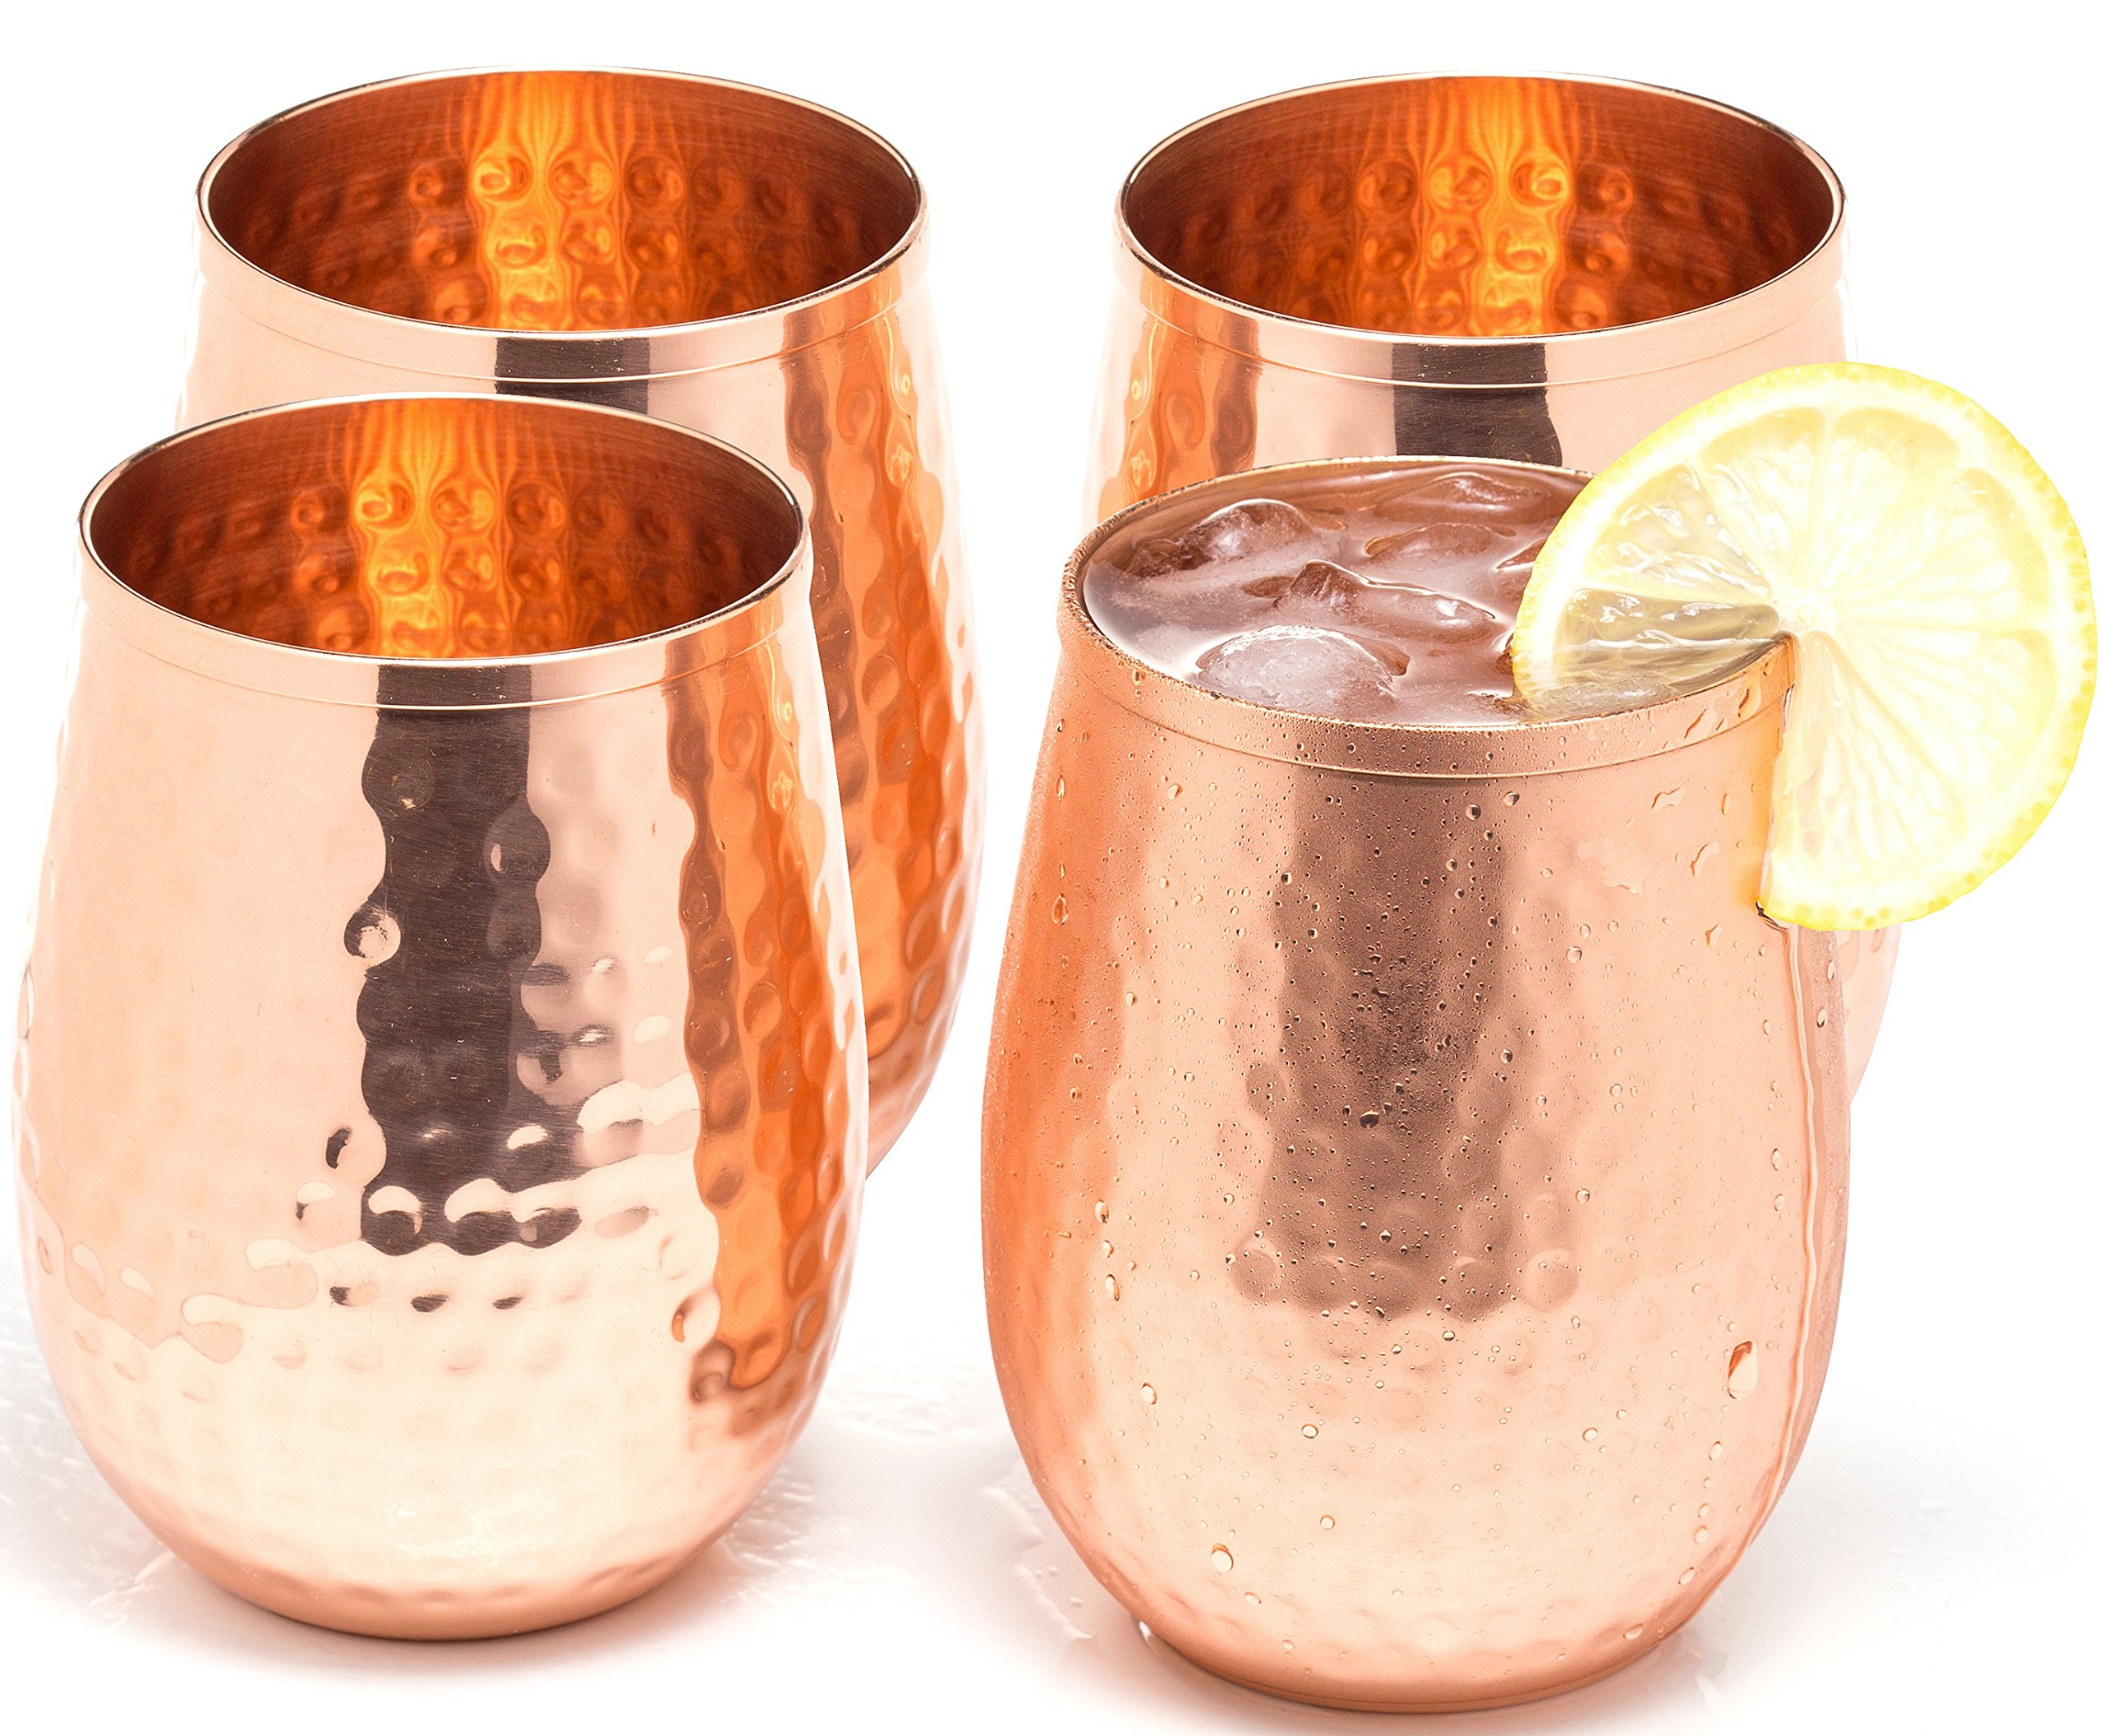 Copper wine glasses set of 4 - 17oz gleaming 100% solid hammered copper stemless wine cups - a perfect gift set for men and women - great copper tumblers for red or white wine and Moscow mules. by Mosscoff (Image #1)